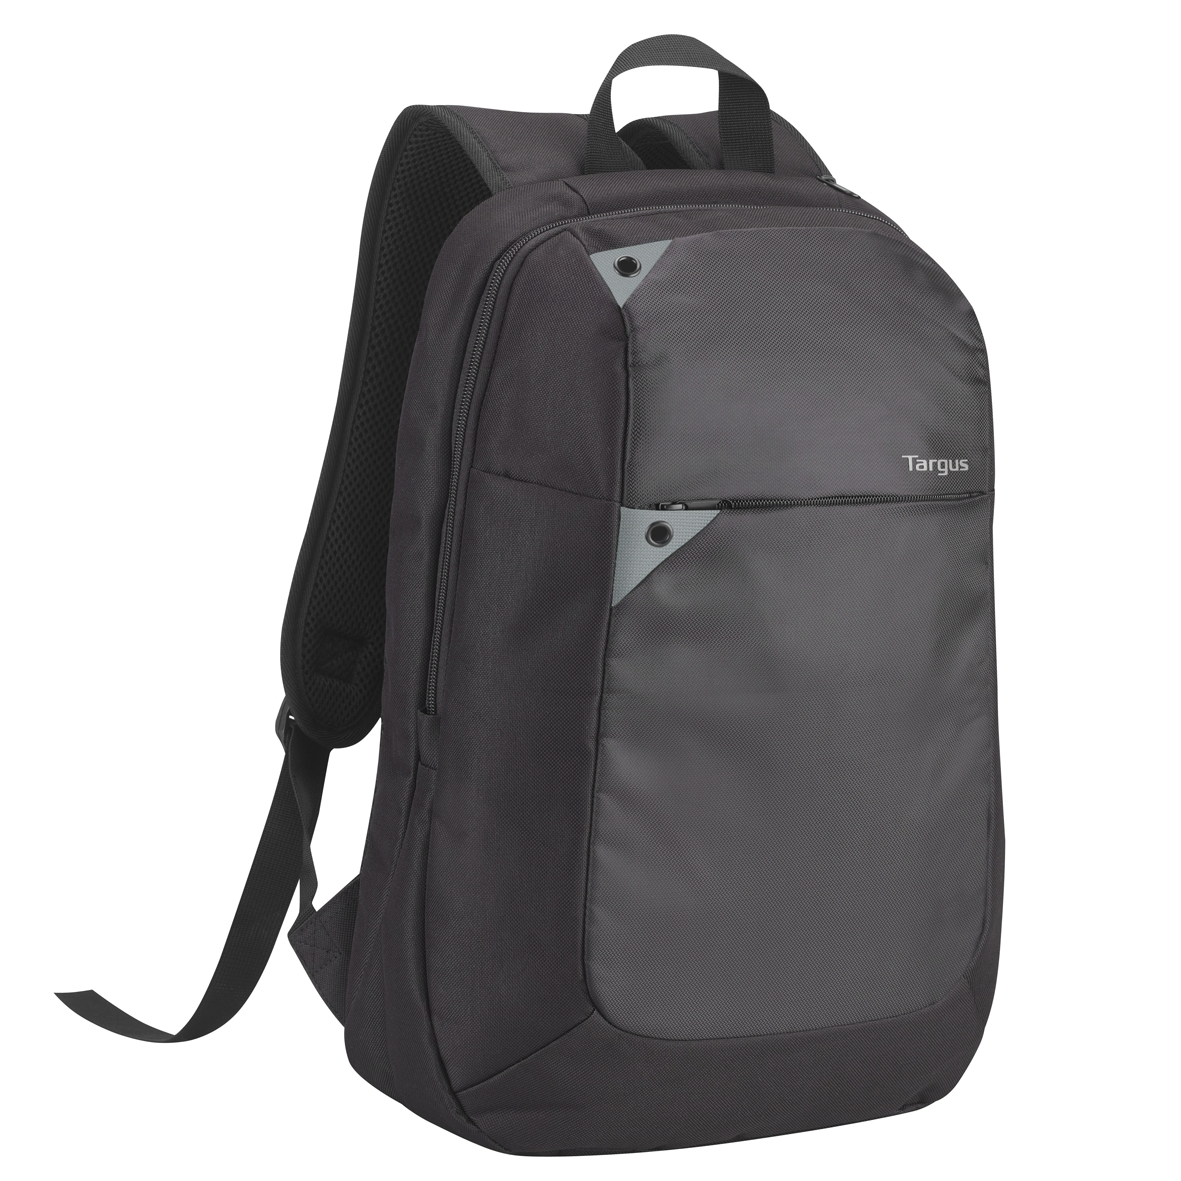 Black Laptop Backpack SDSMg6F0